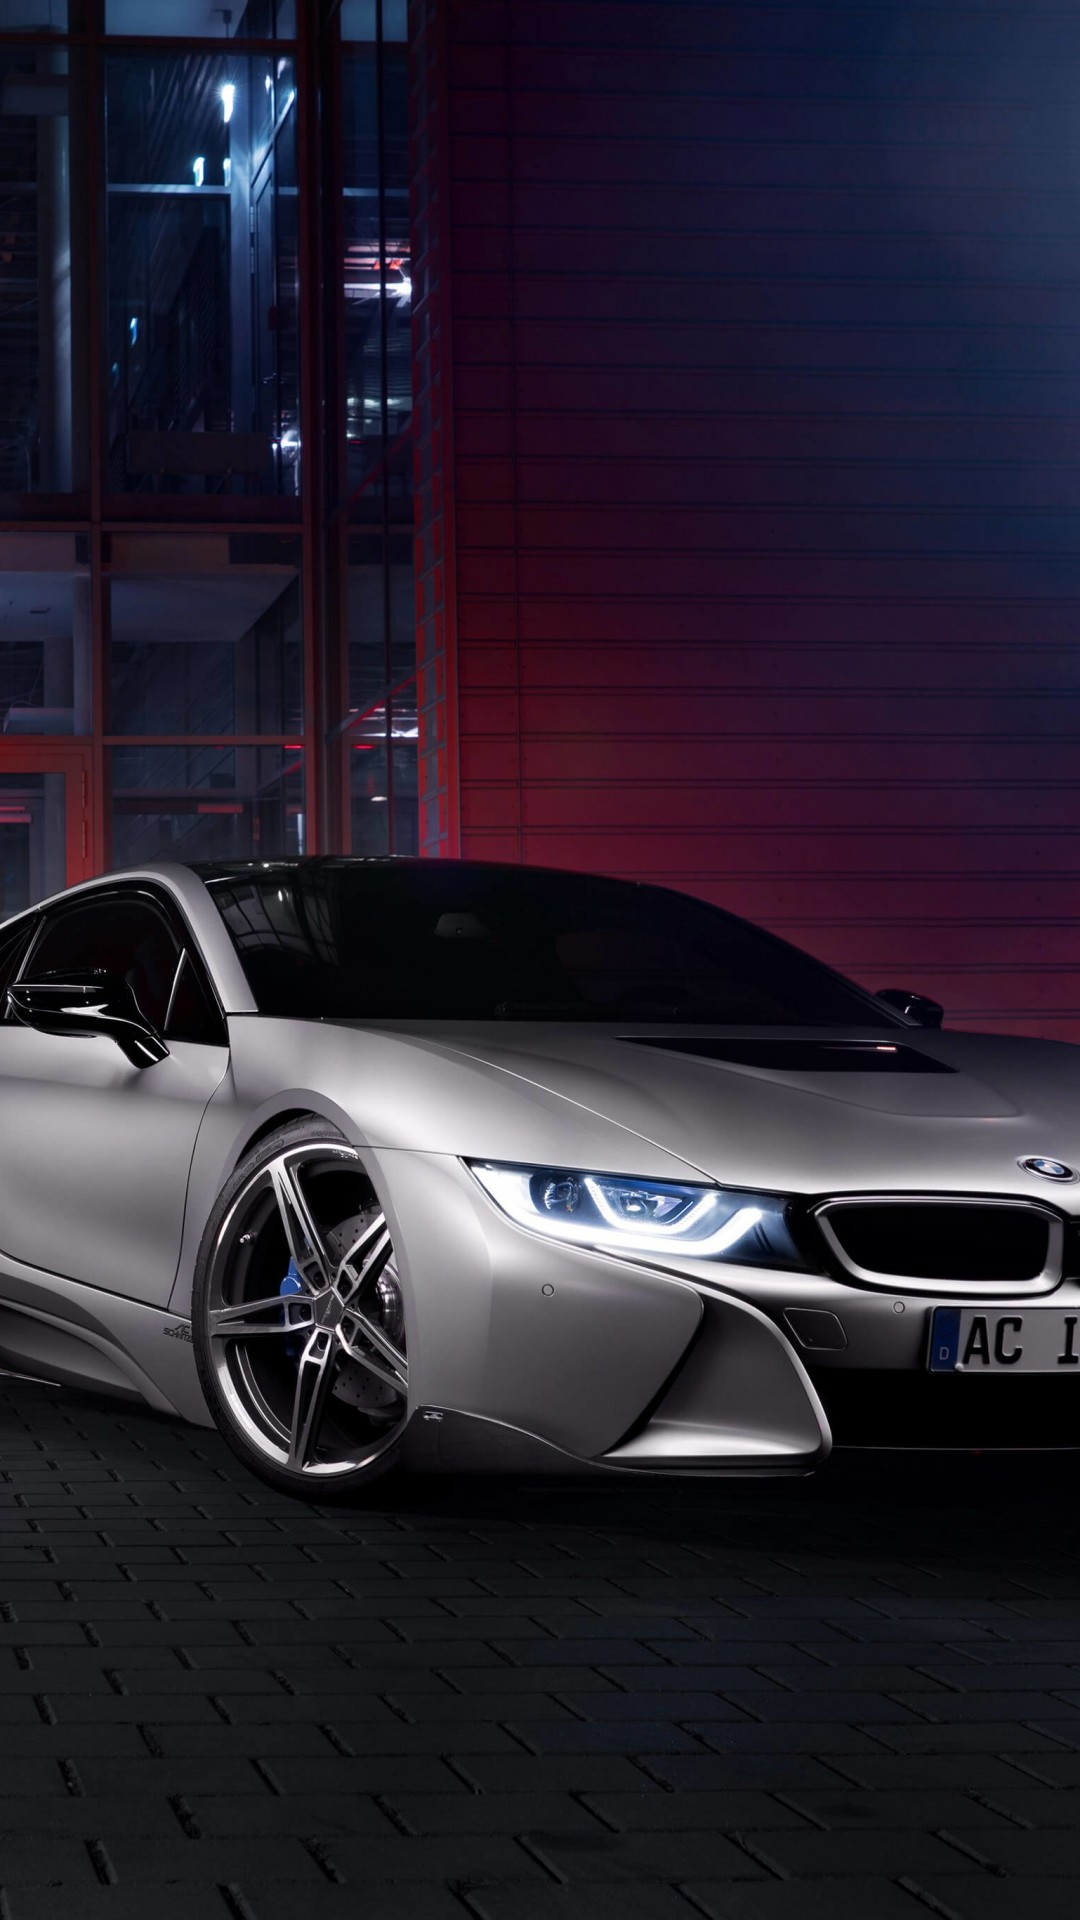 BMW i8 designed by AC Schnitzer Wallpaper for Google Nexus 5